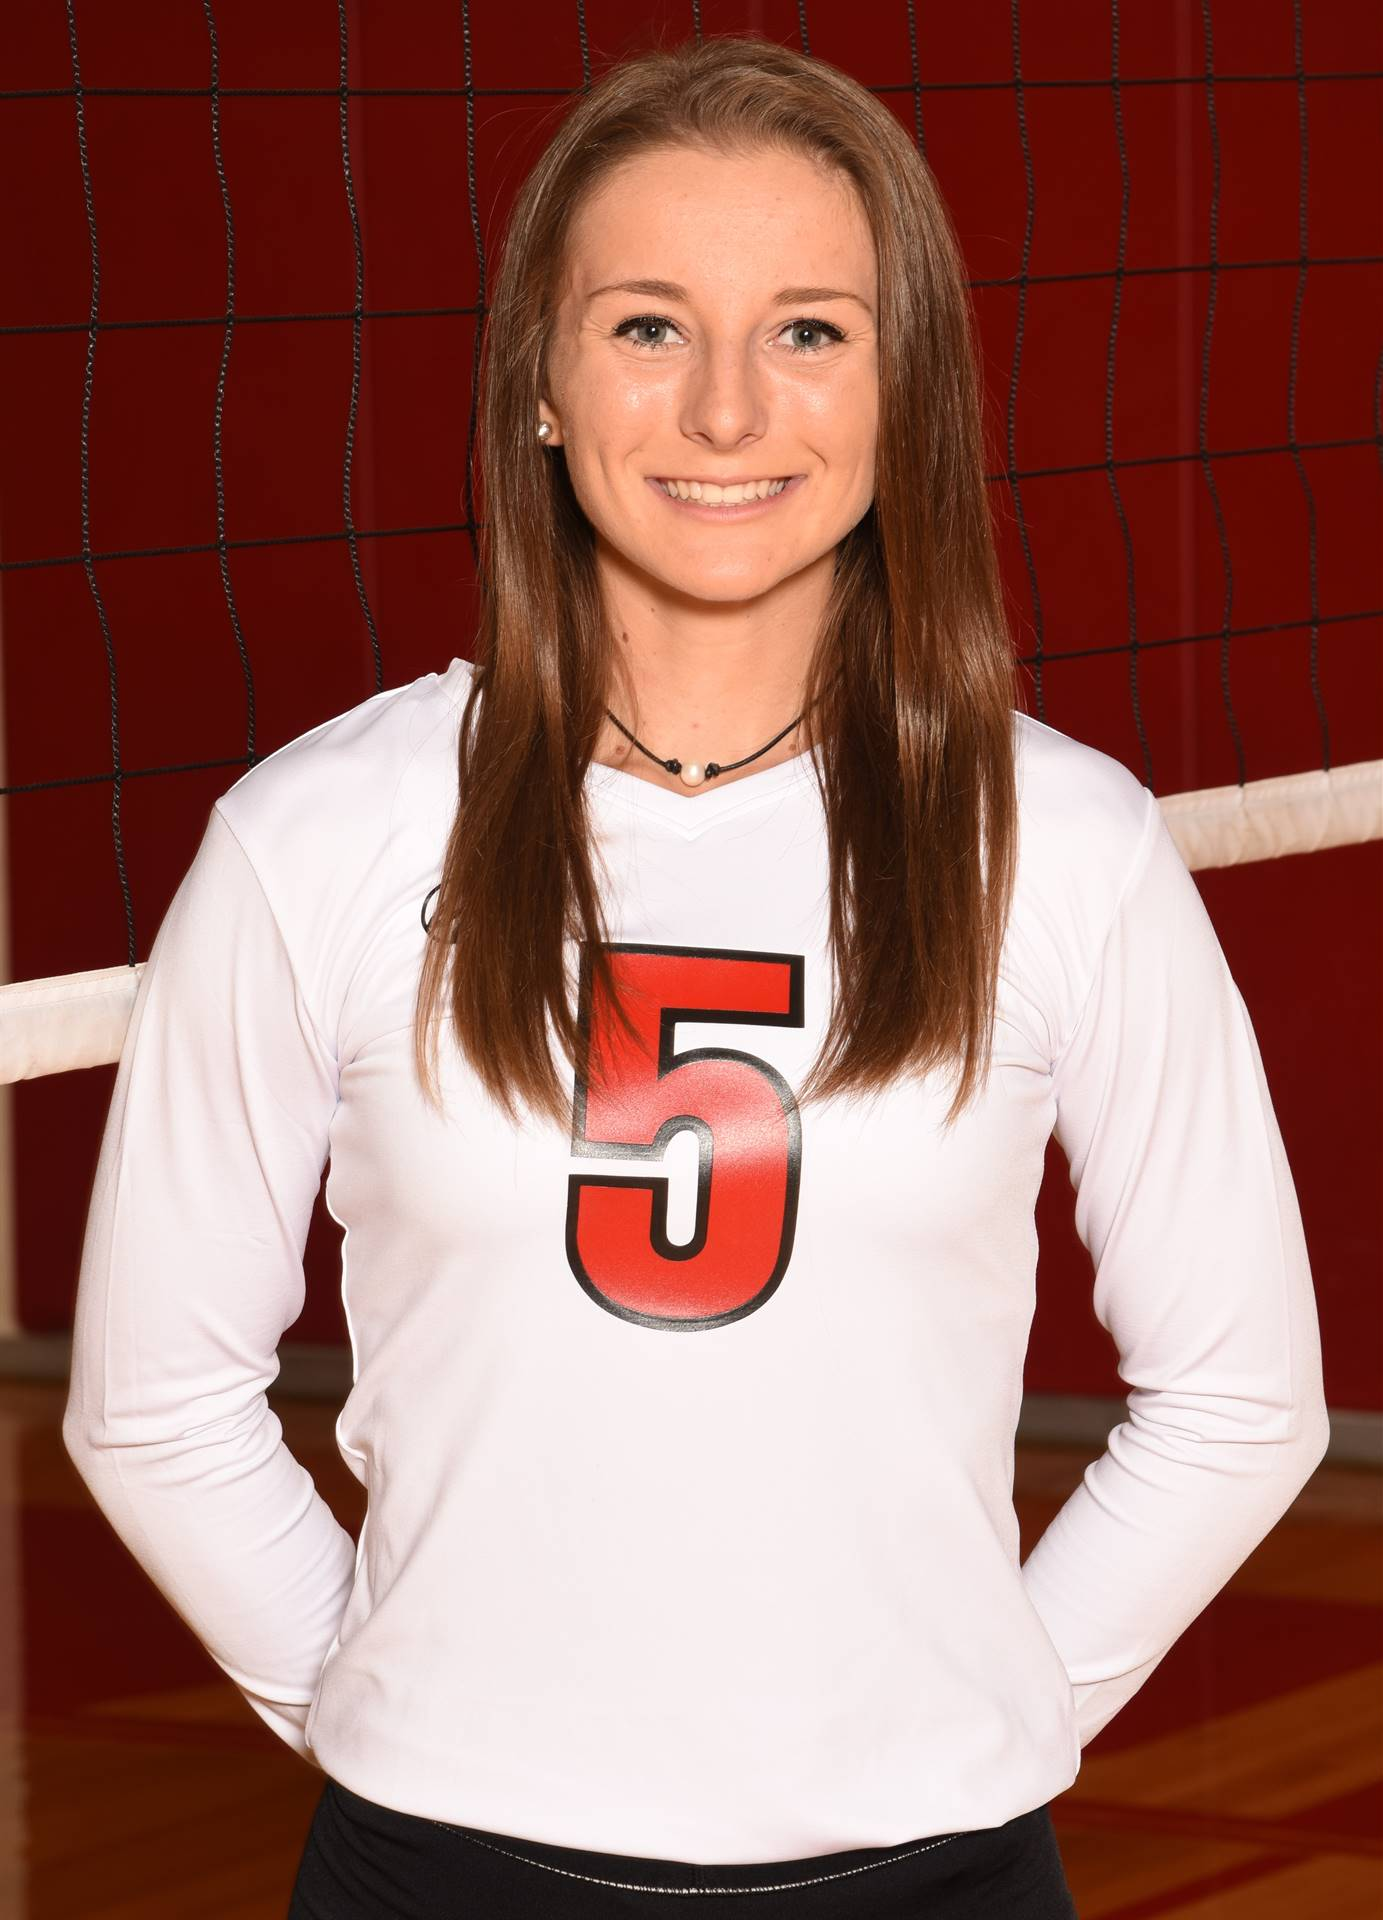 Senior Volleyball Picture - Samantha Watkins